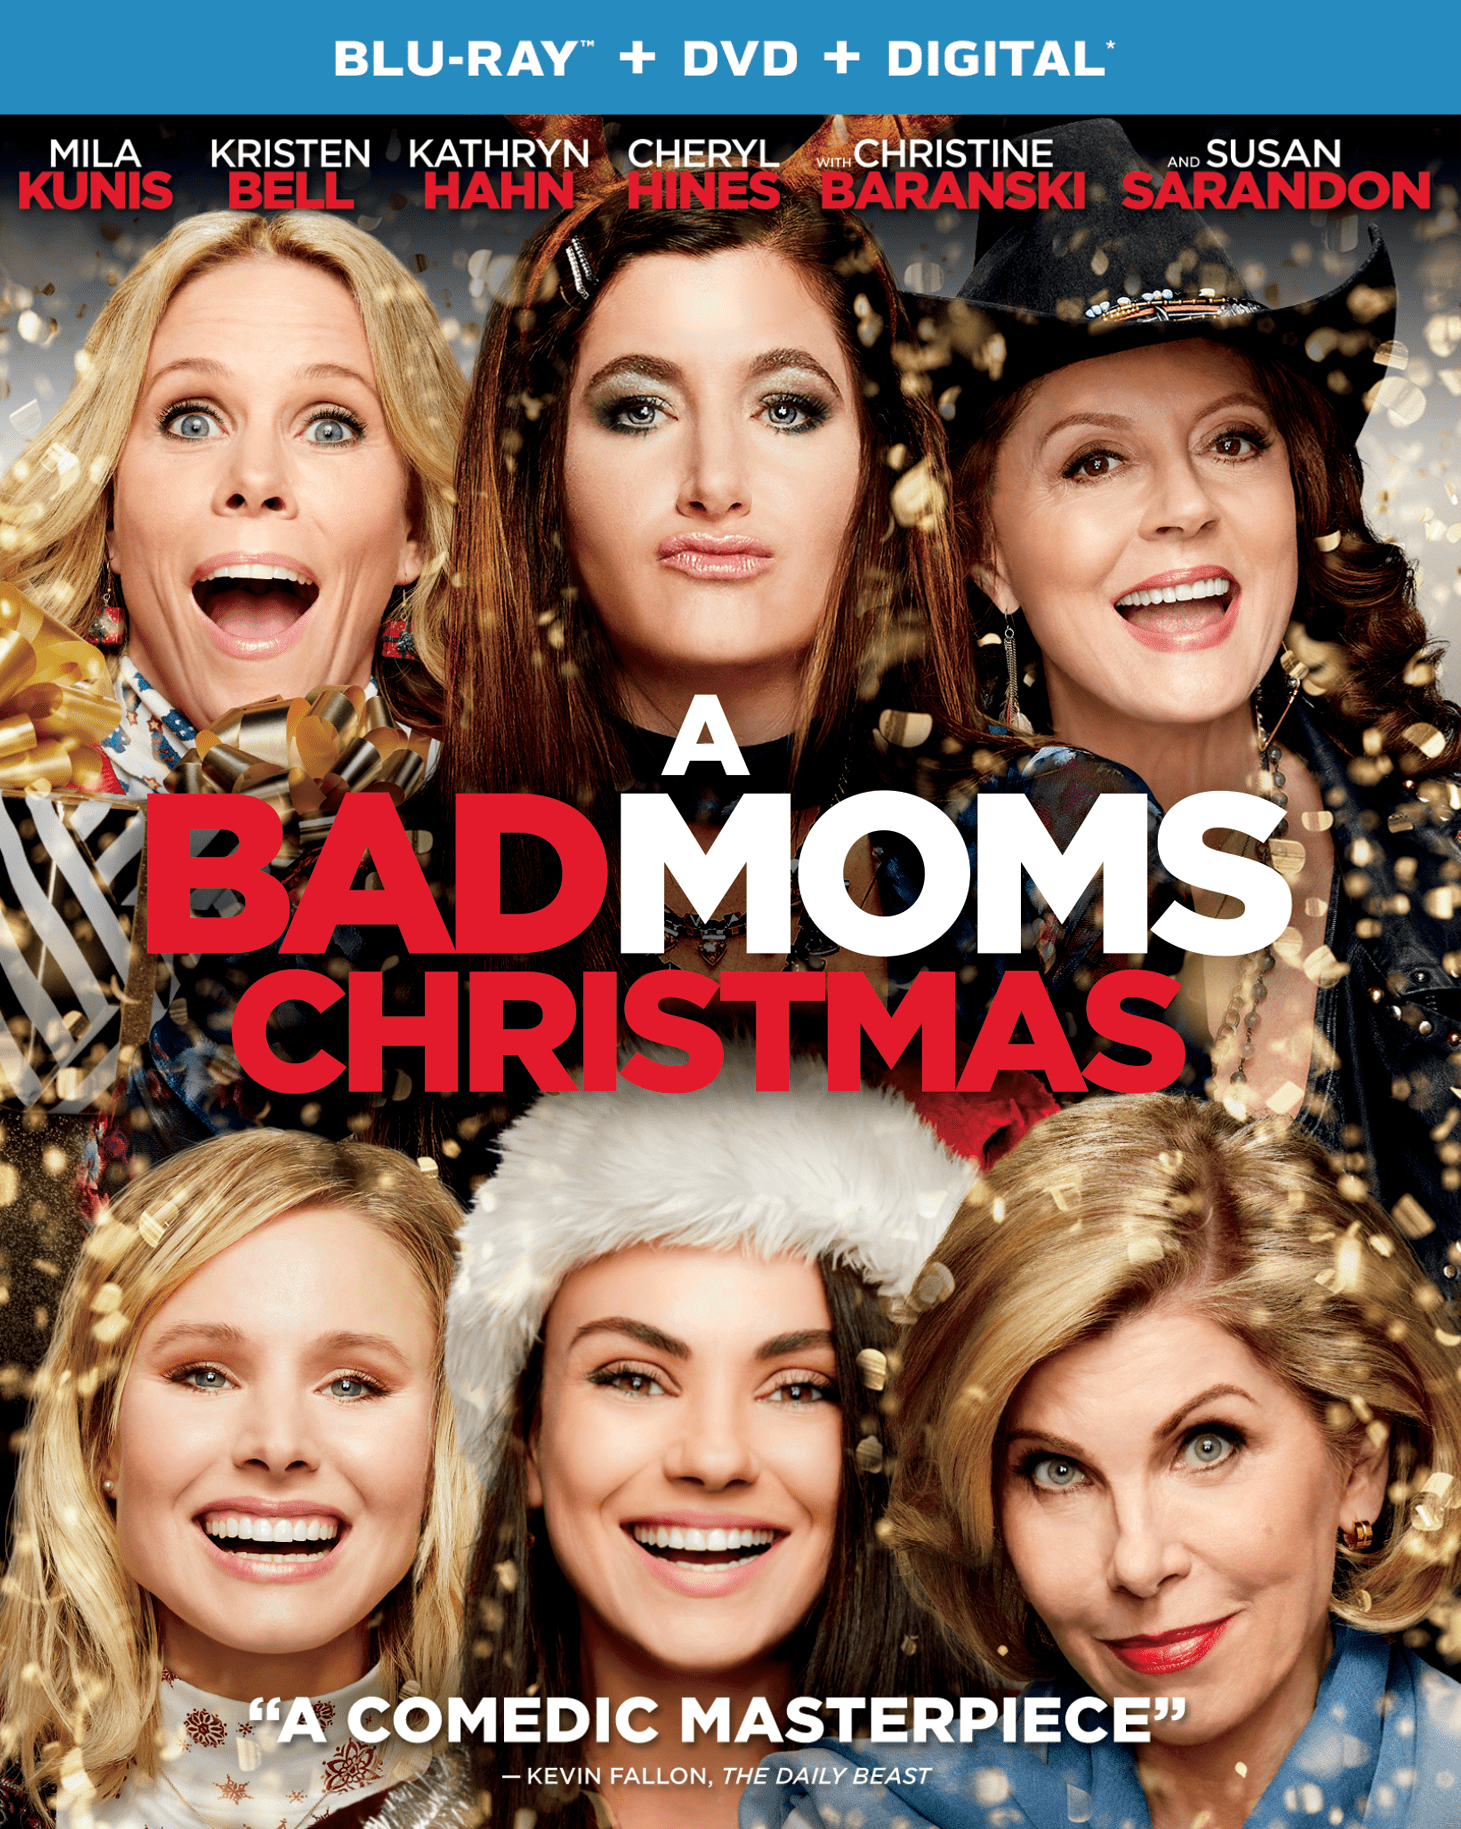 A Bad Moms Christmas (Blu-ray + DVD + Digital) by